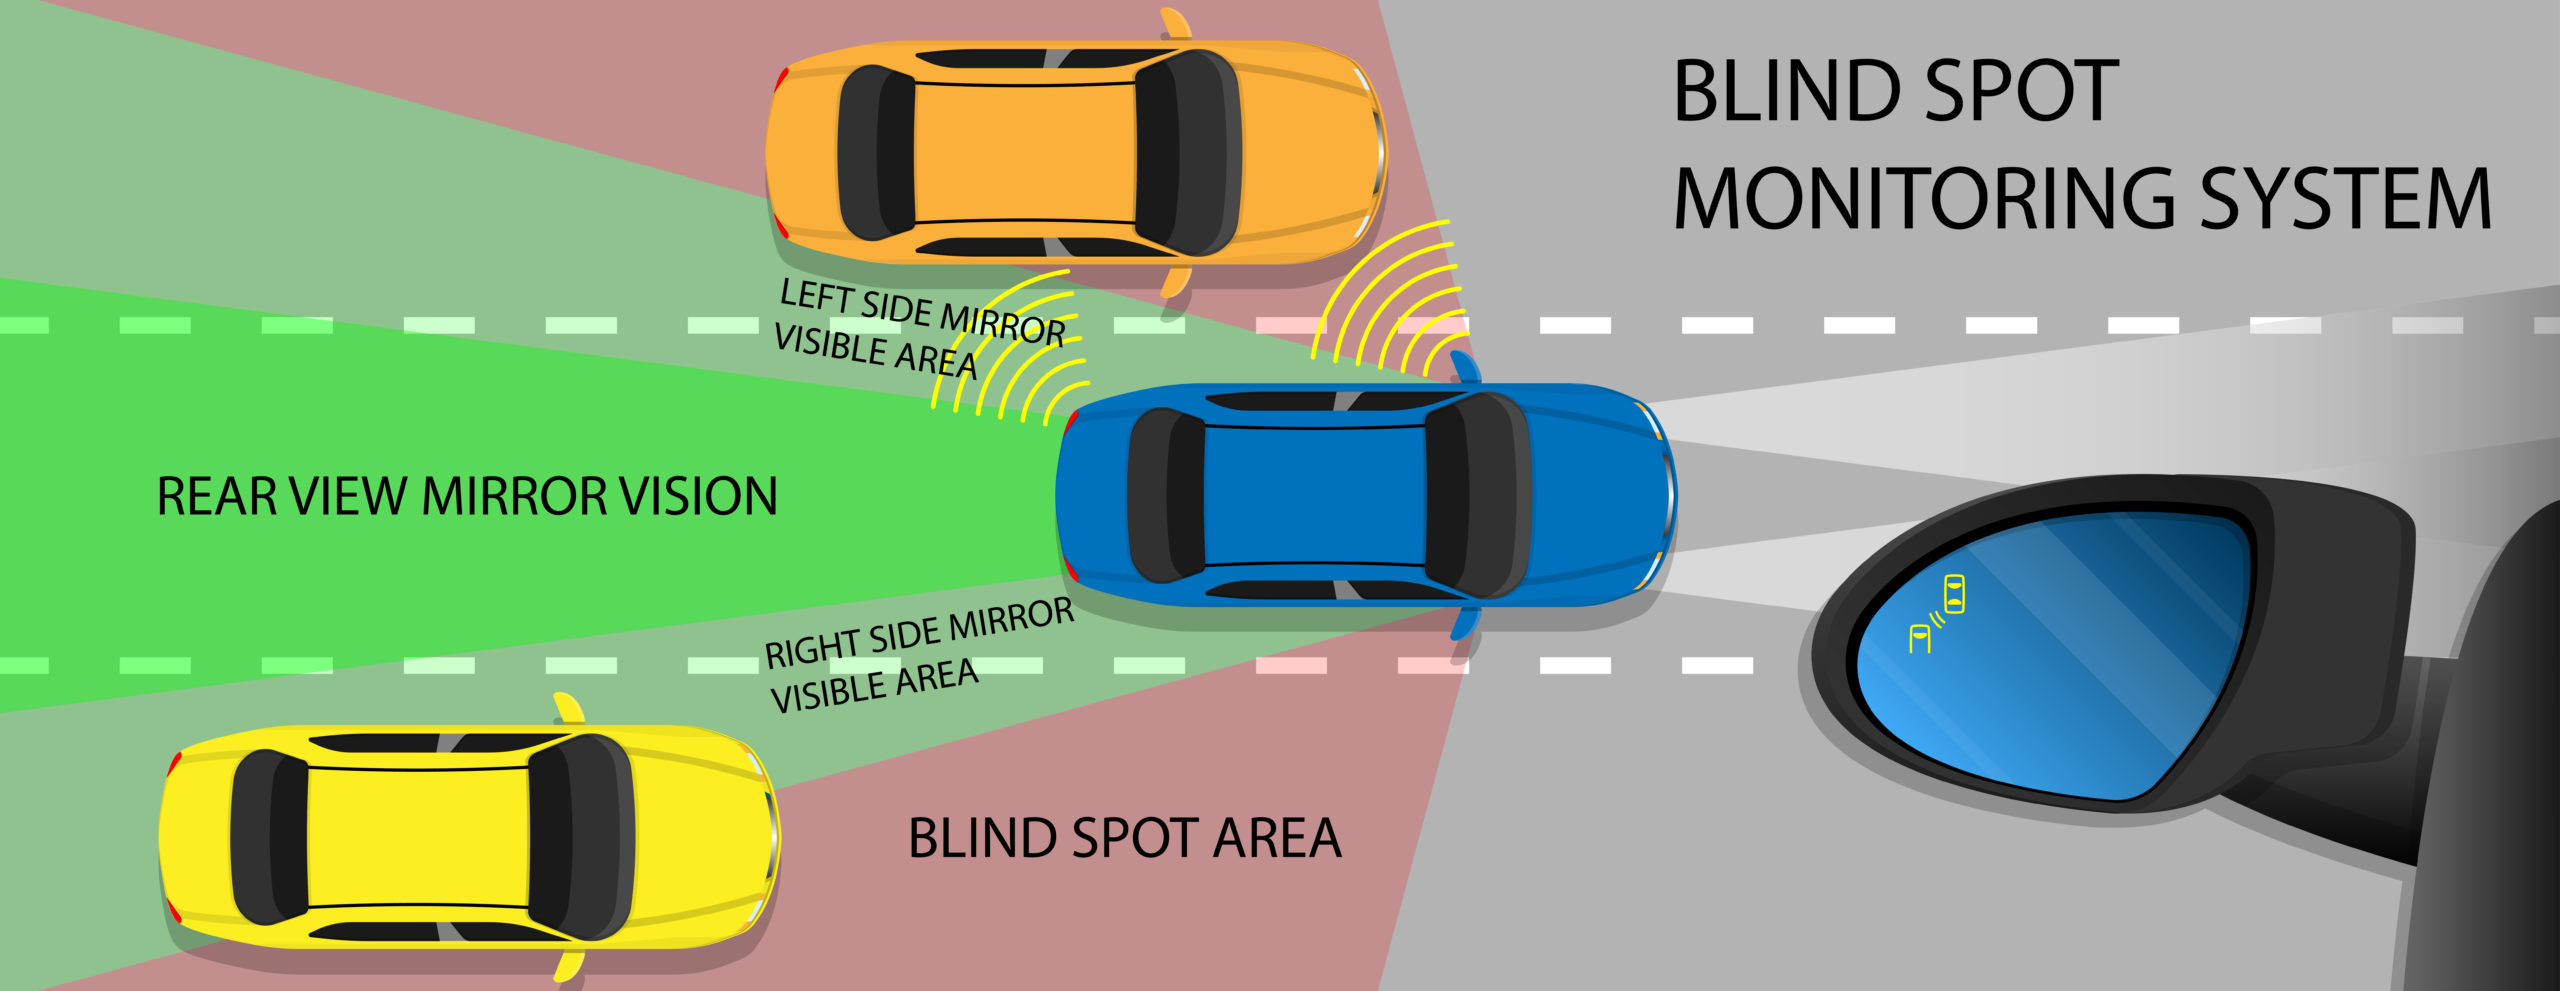 Diagram showing blind spot areas